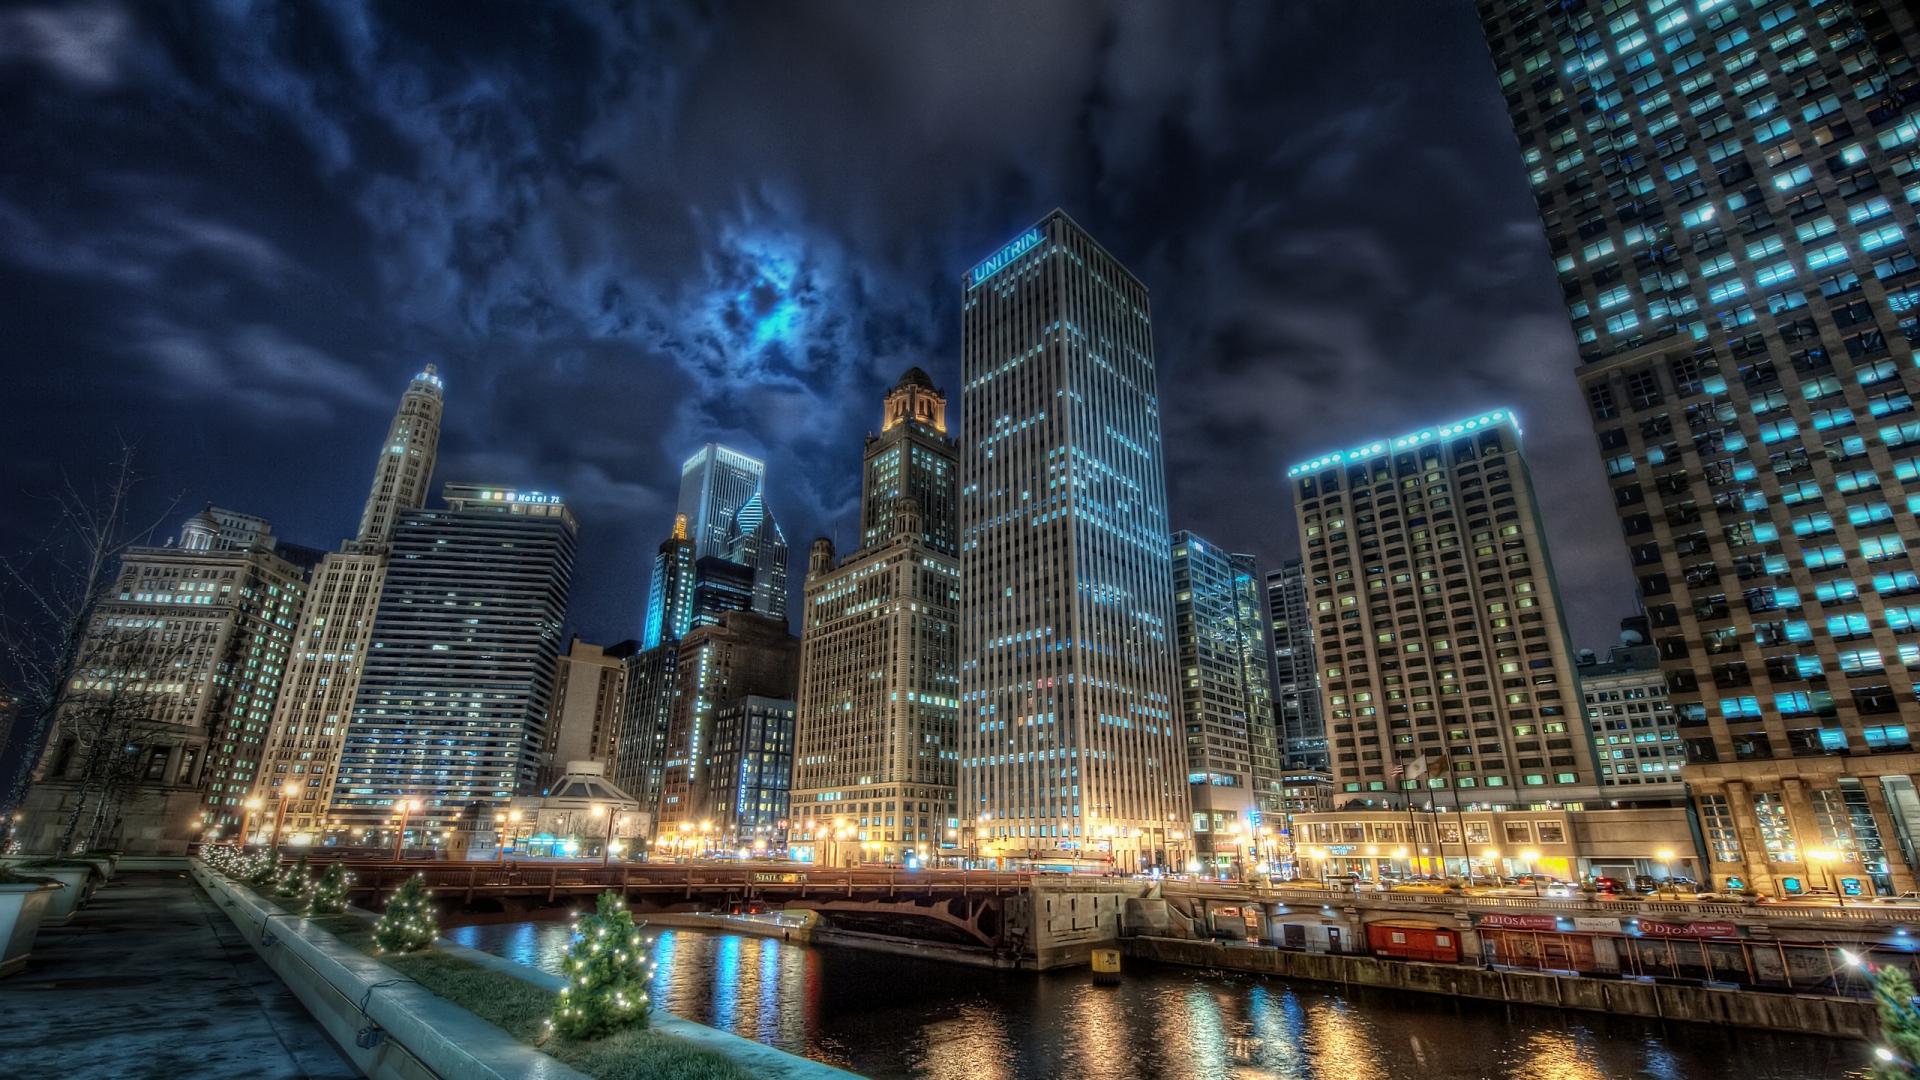 Must see Wallpaper Mac Chicago - city_chicago_channel_water_lights_reflection_night_america_united_states_states_59470_1920x1080  Picture_273810.jpg